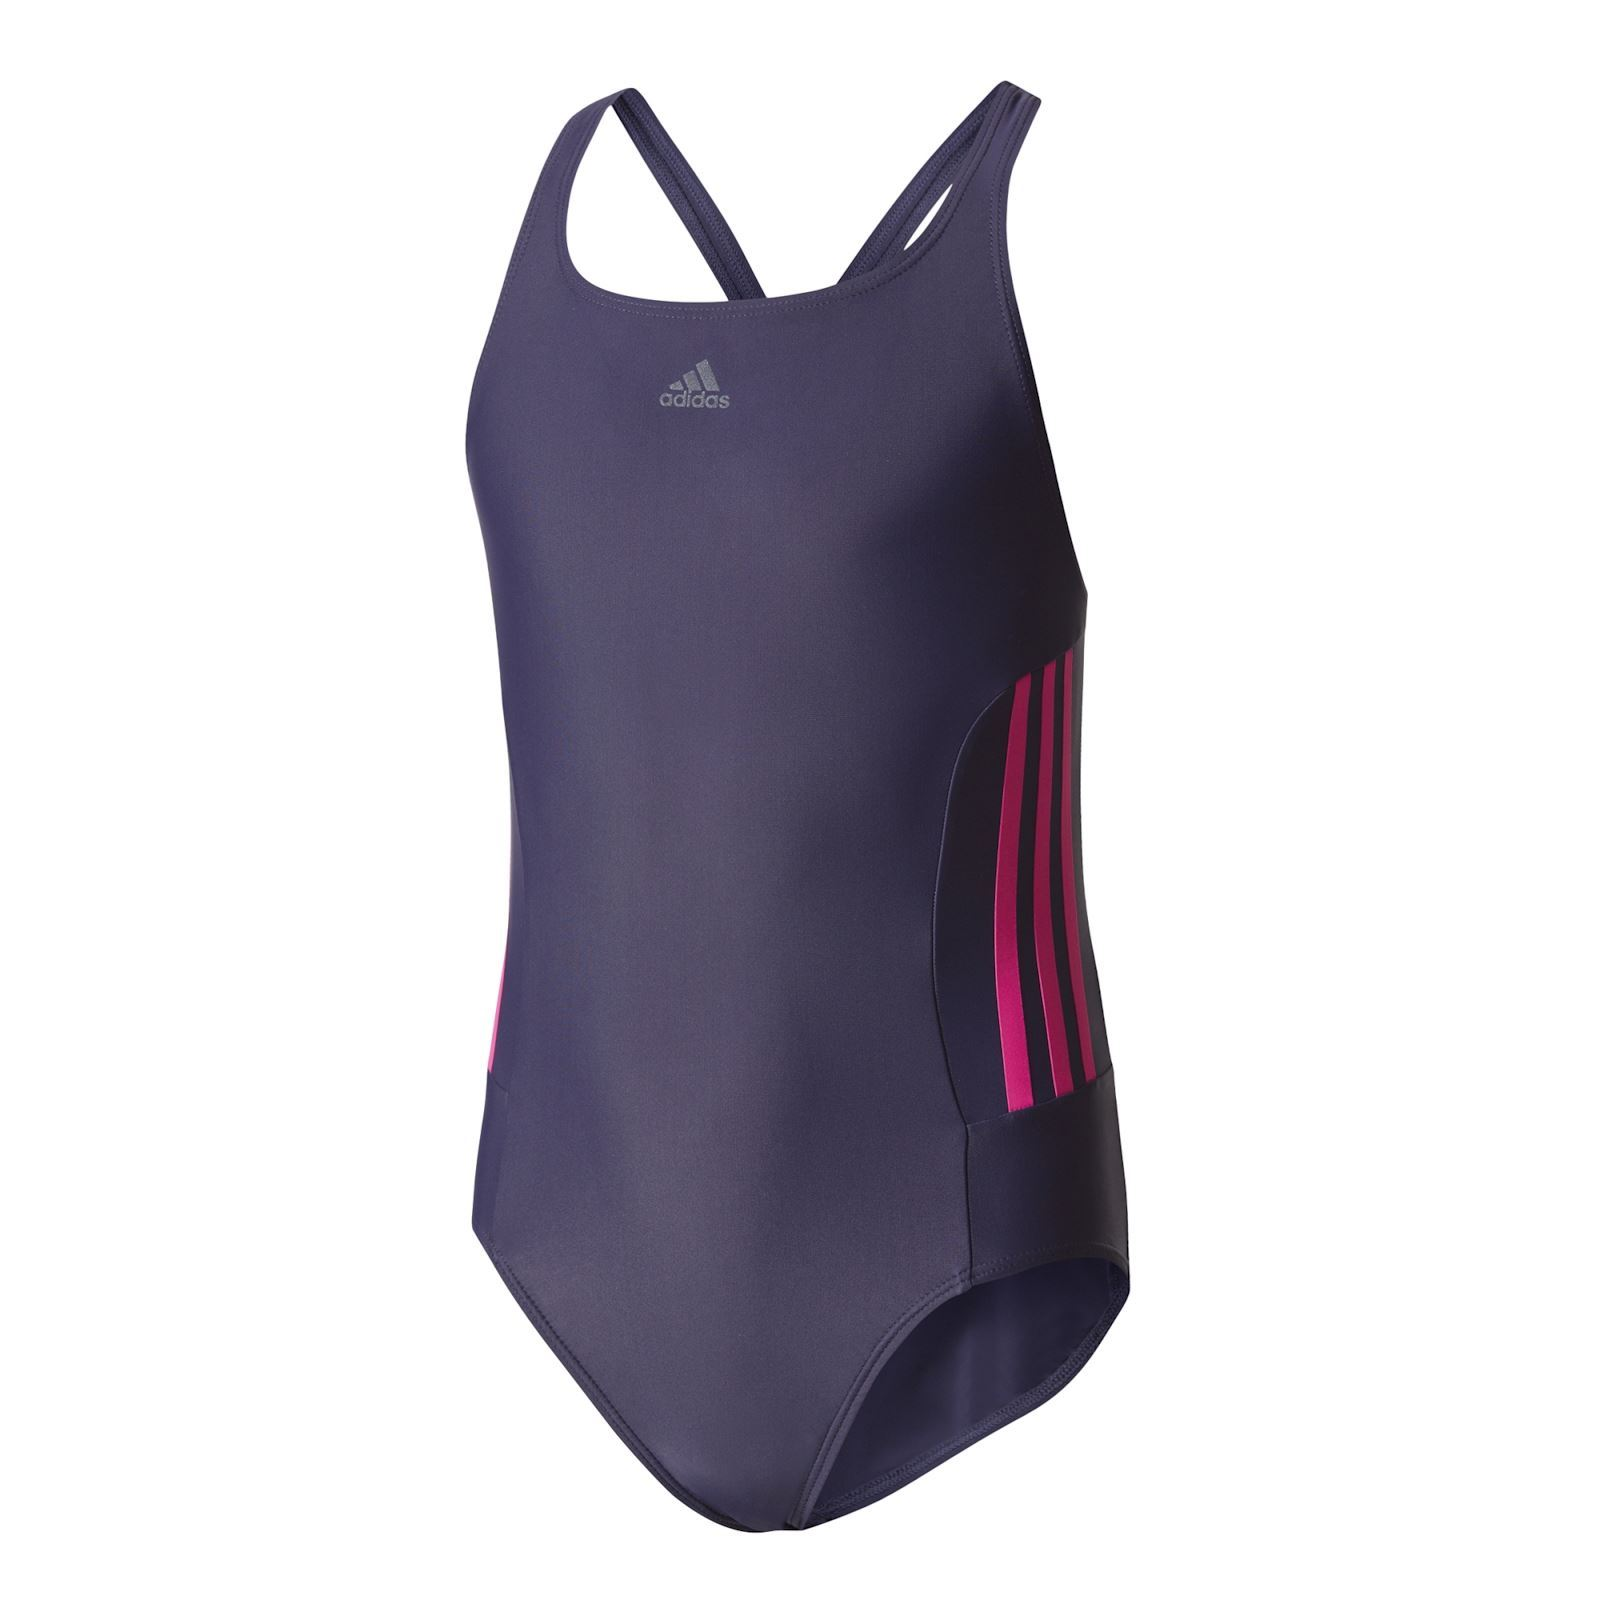 Adidas Performance Maillot 1 pièce - violet